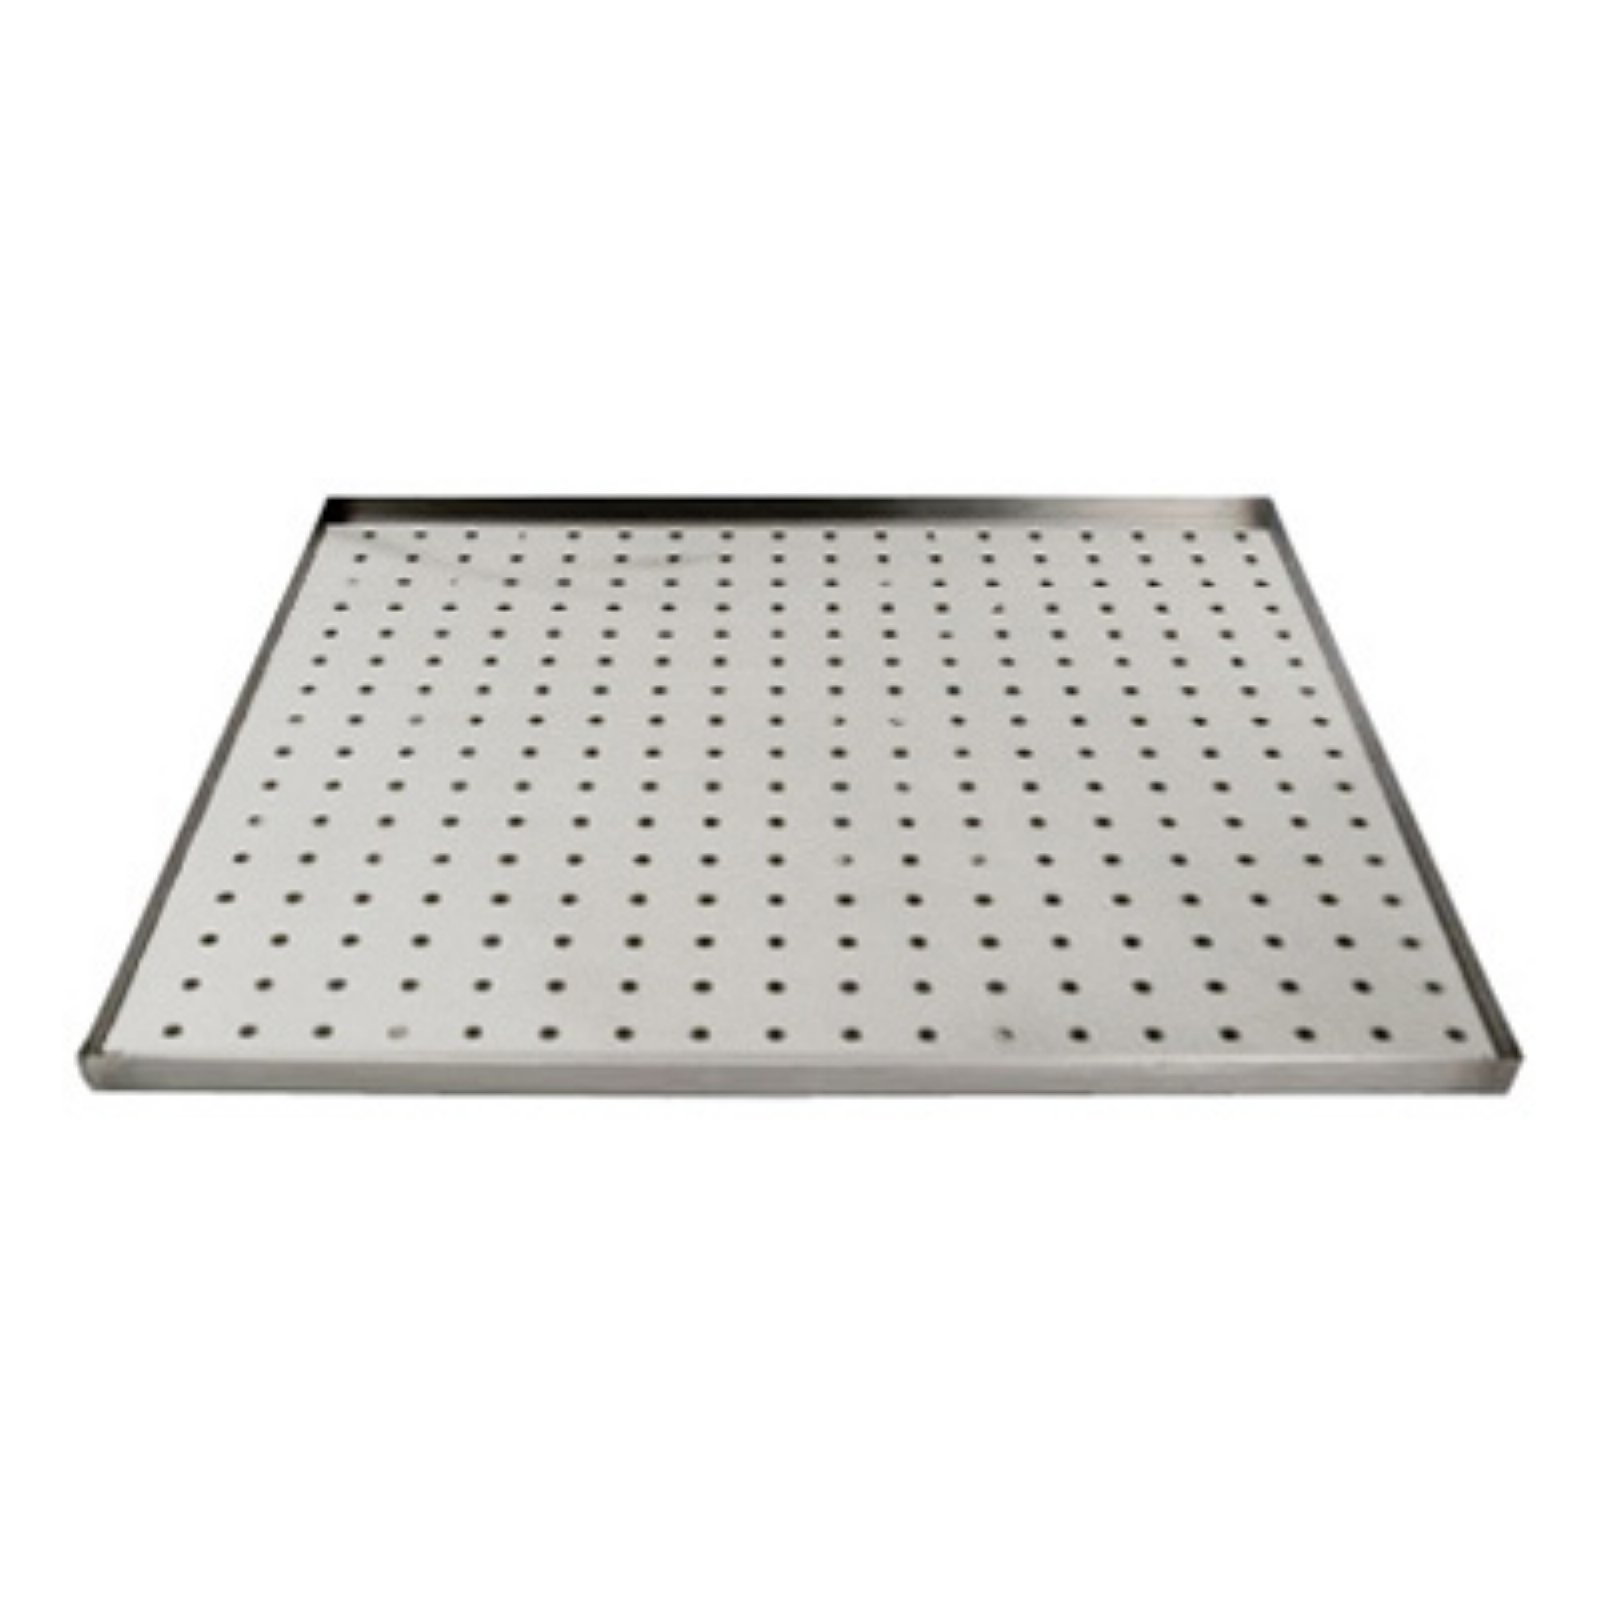 TSM 32730 Perforated Stainless Steel Dehydrator Drying Tray for D5 and D10